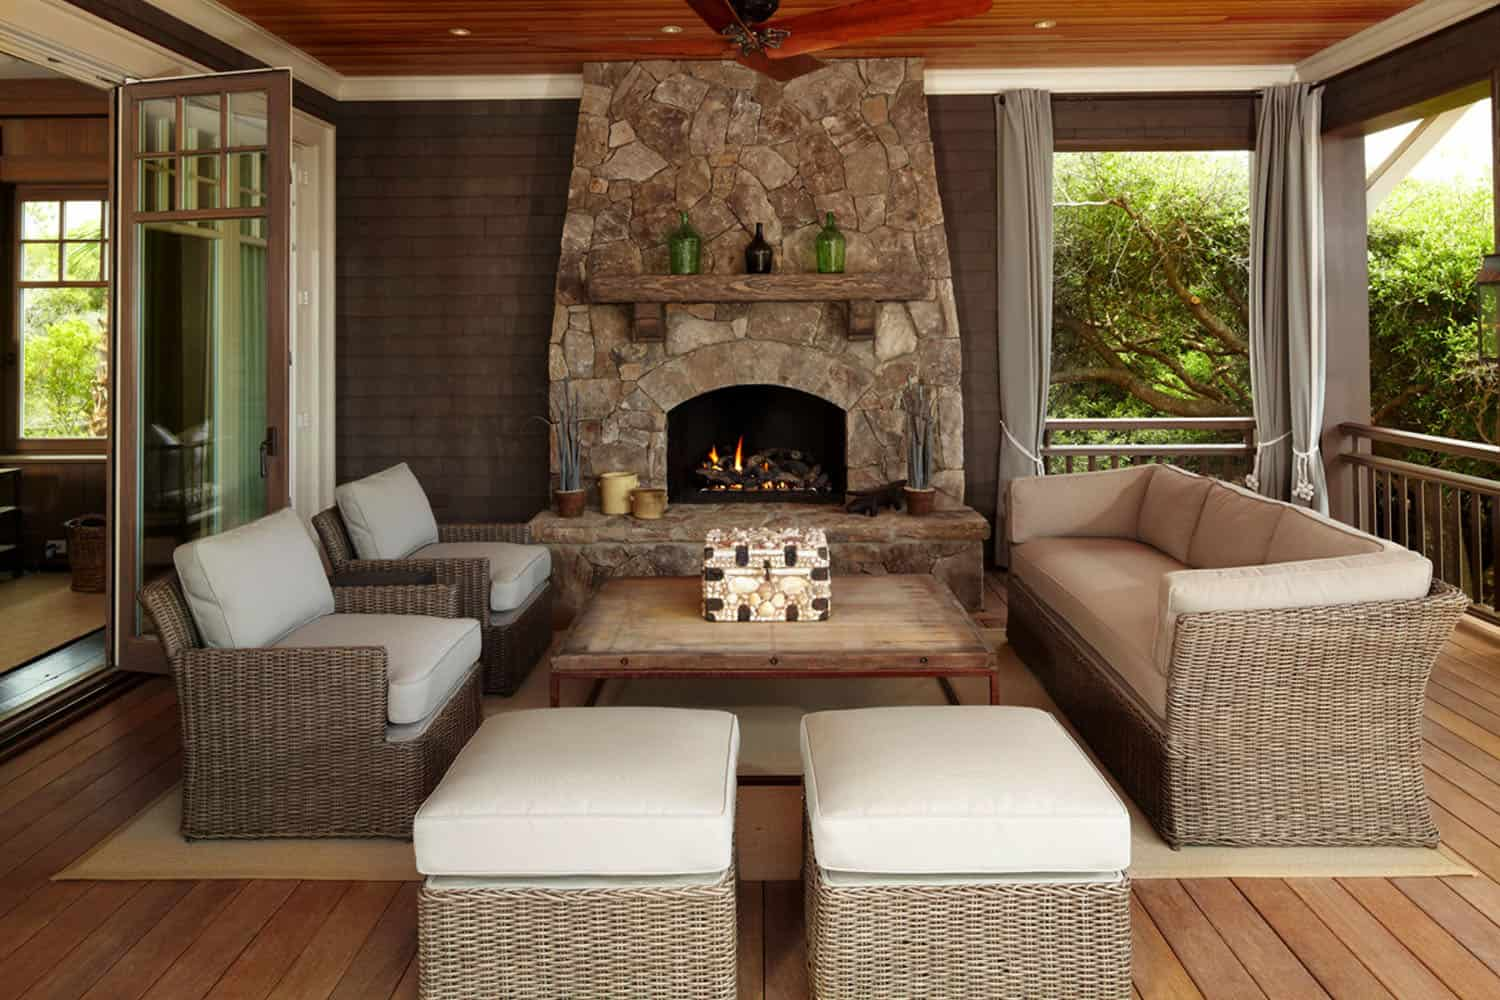 beach-style-screen-porch-design-with-fireplace